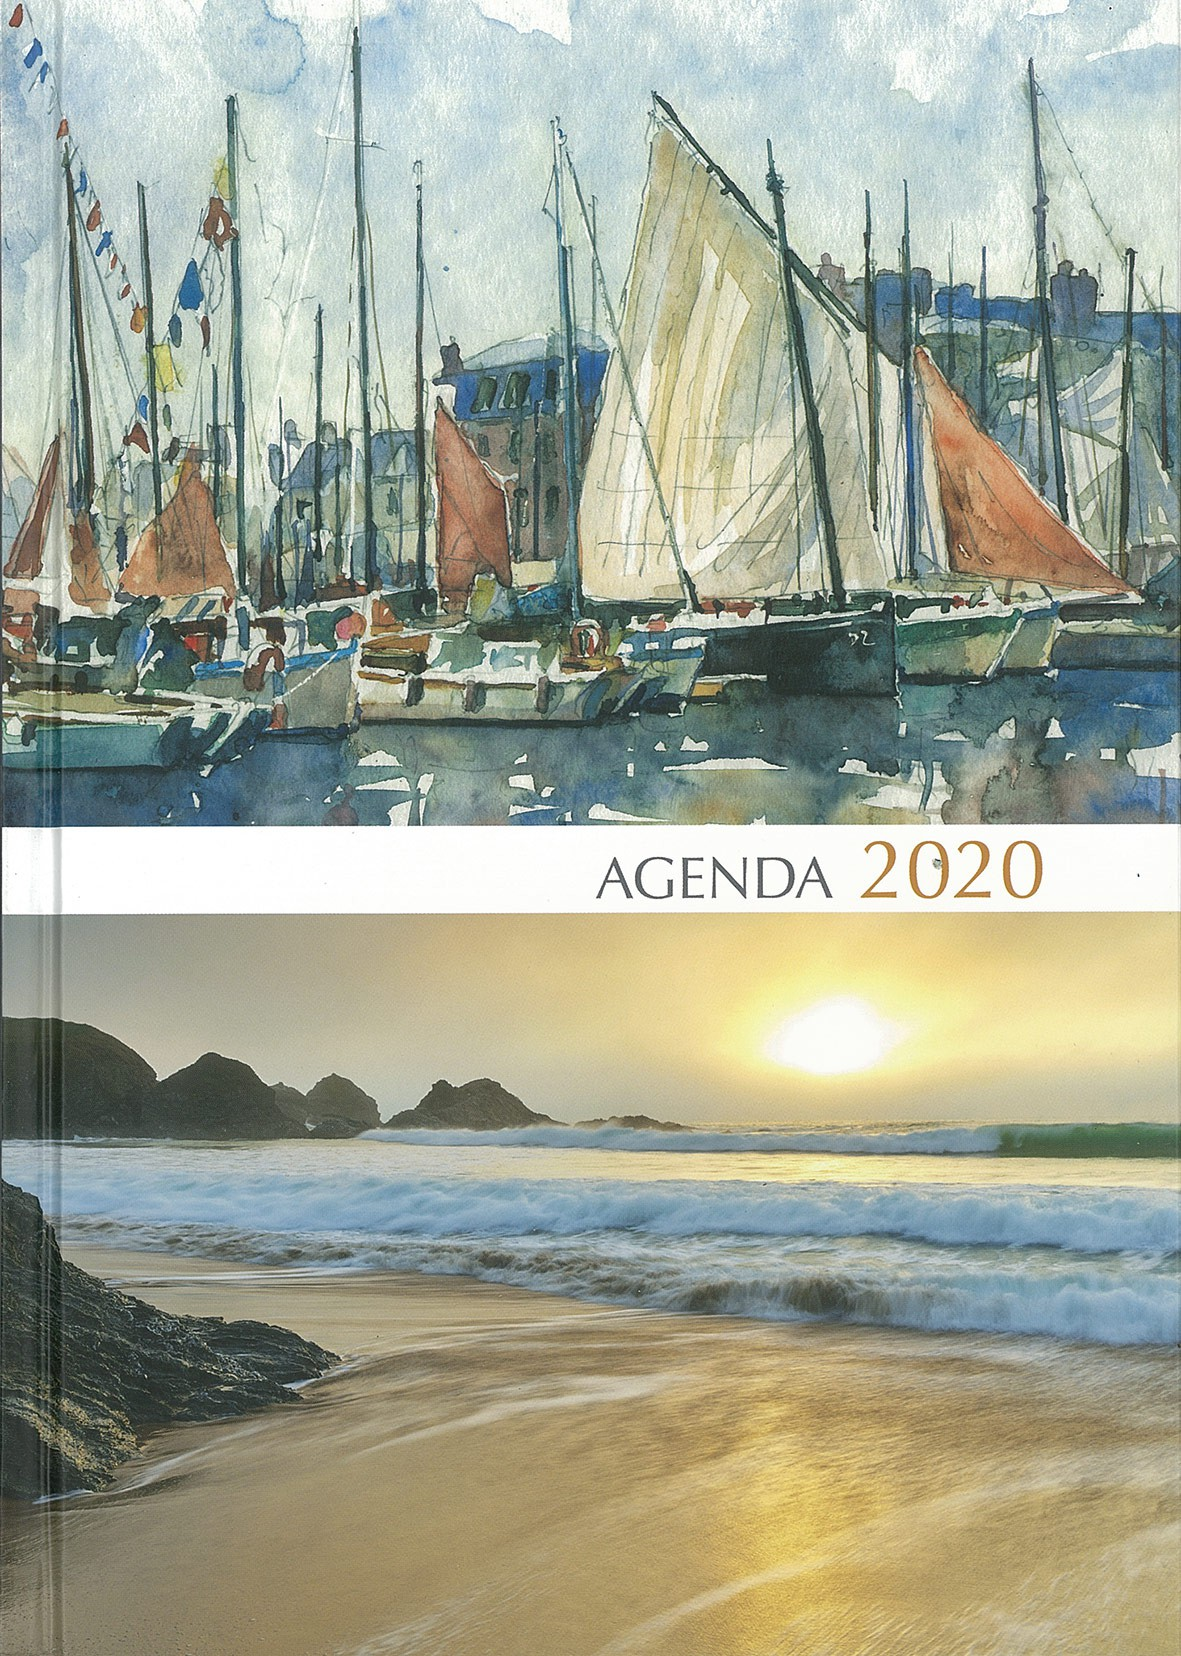 Grand agenda 2021, couverture aquarelle